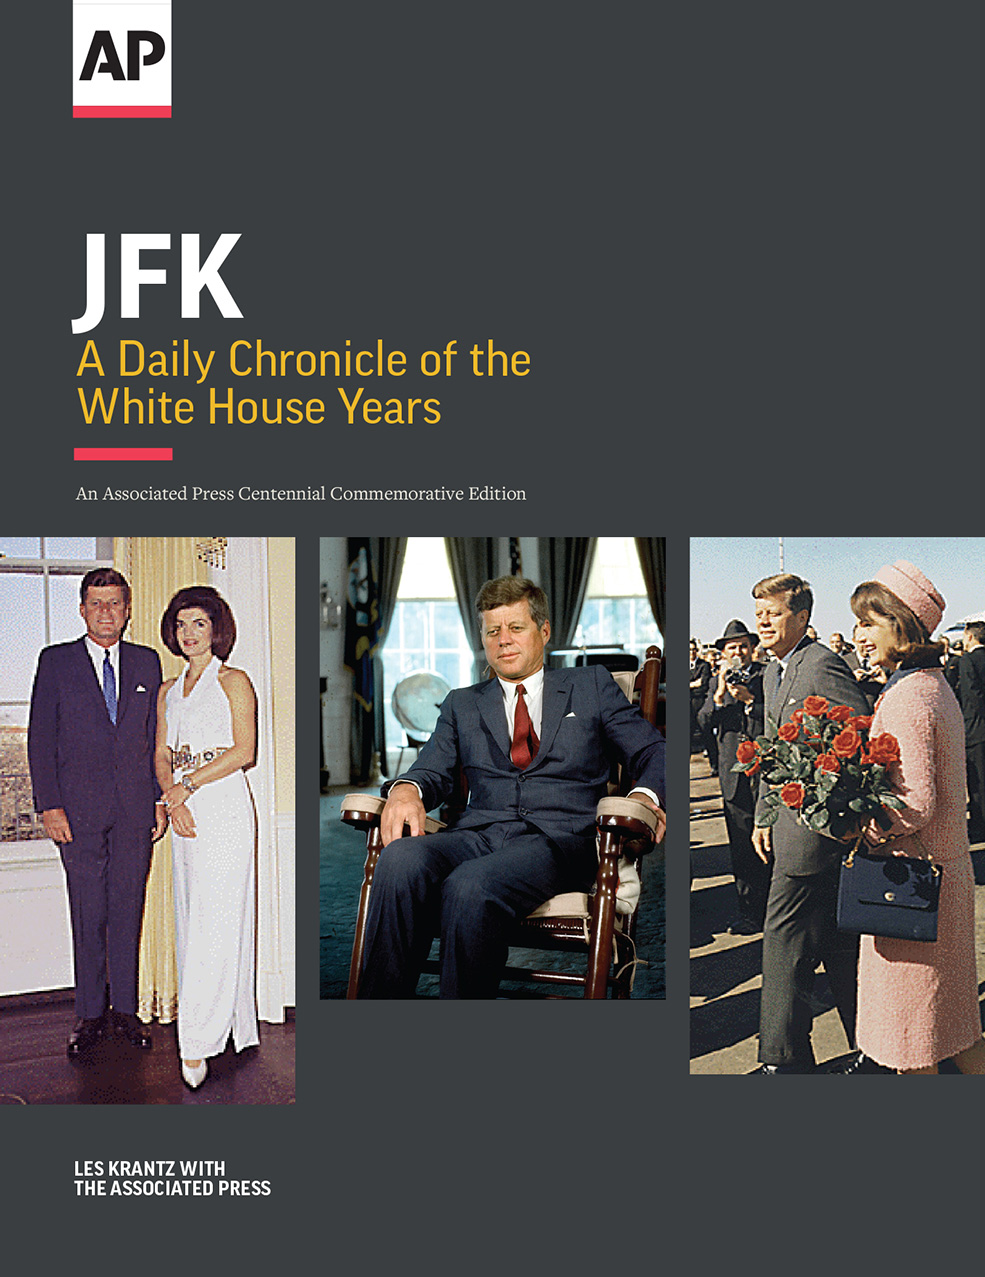 """JFK: A Daily Chronicle of the White House Years"" is available in print and e-book exclusively at Amazon.com  https://www.ap.org/books/jfk/index.html"